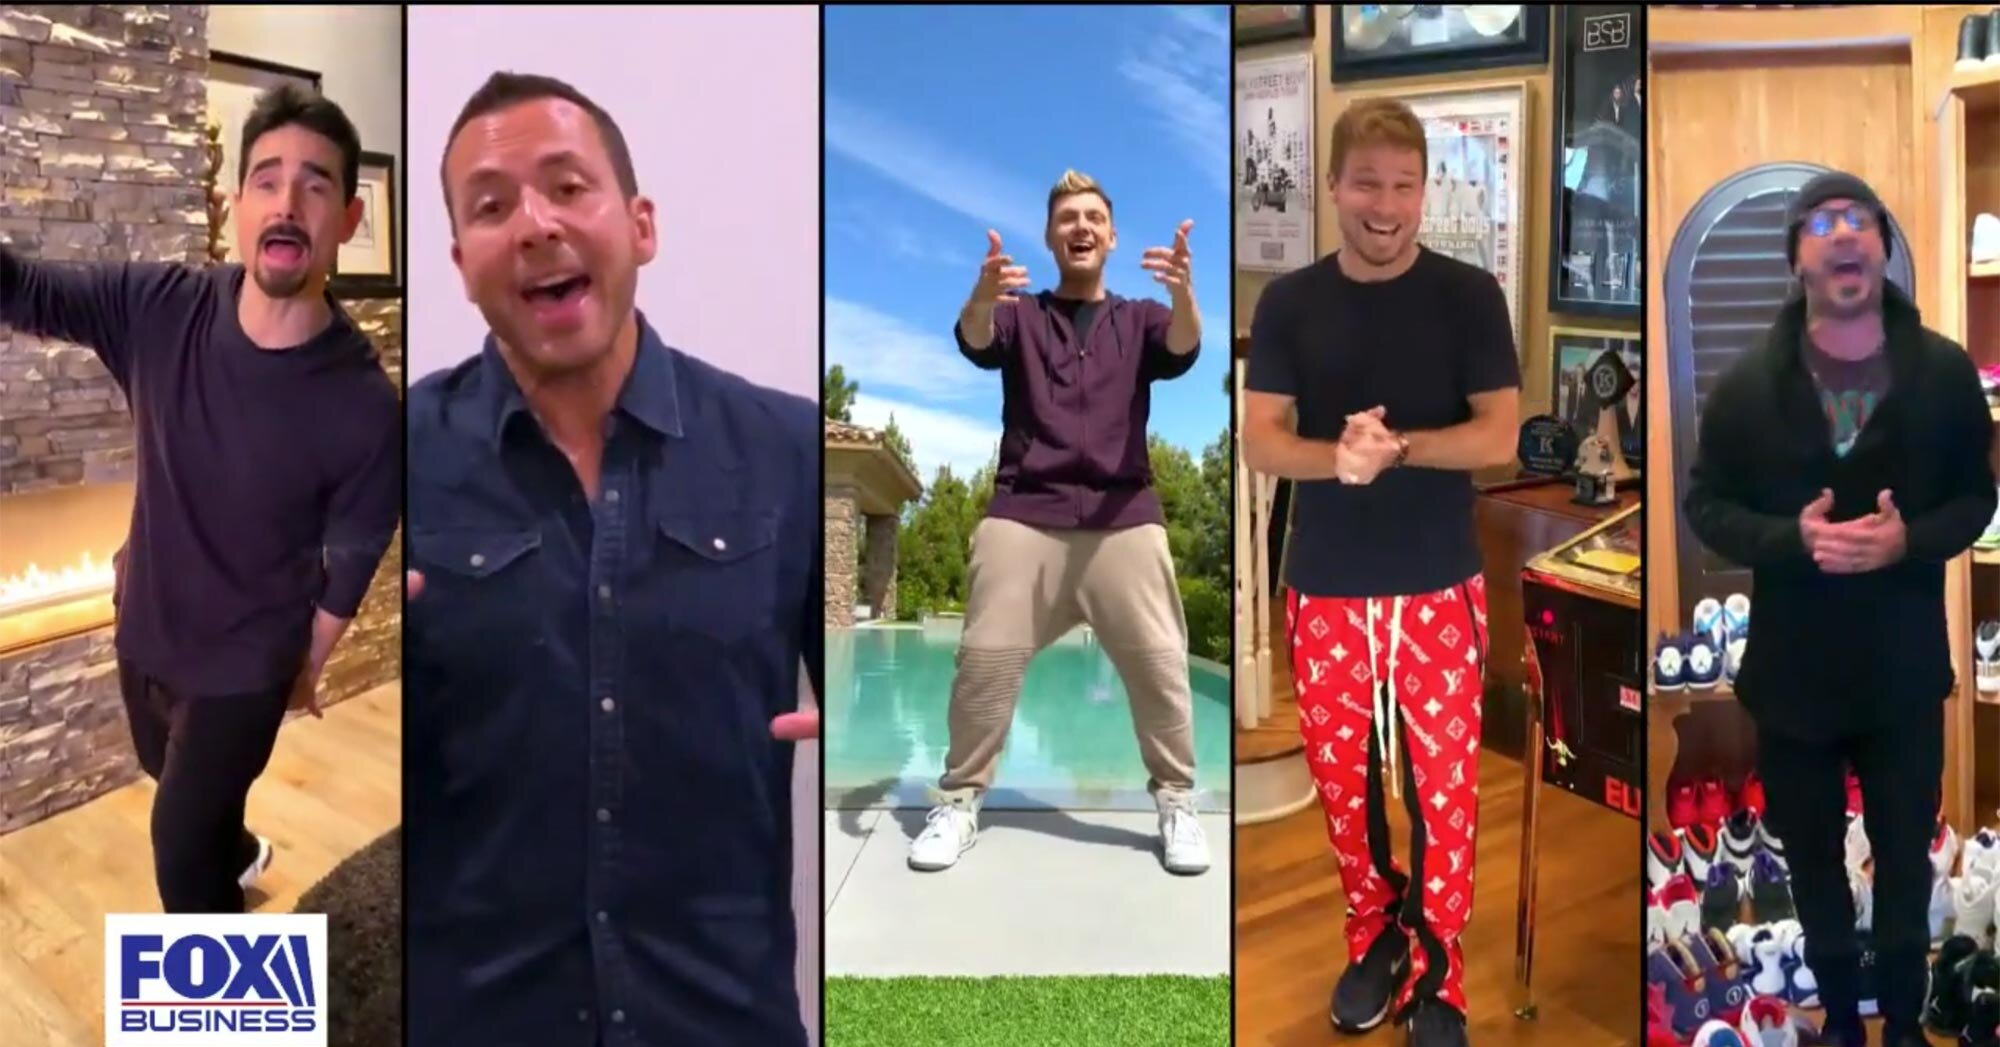 Backstreet Boys reunite via video to perform 'I Want It That Way' from 5 different locations